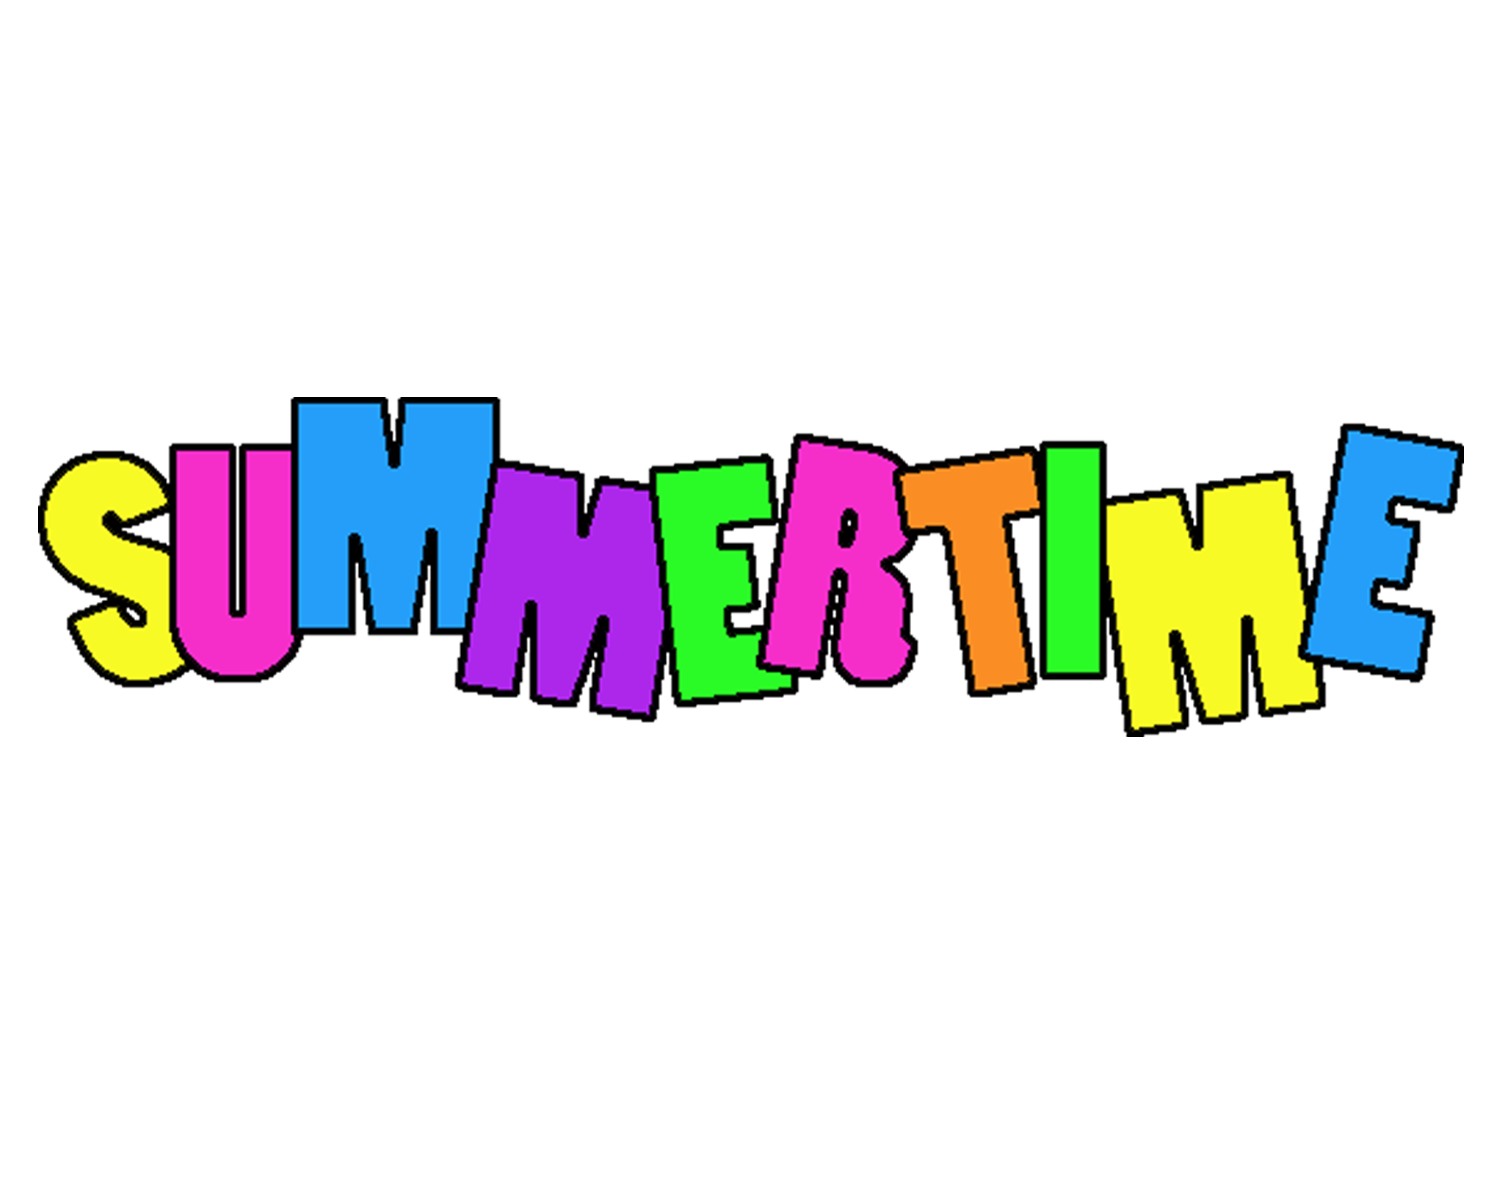 Free Summertime Cliparts, Download Free Clip Art, Free Clip.